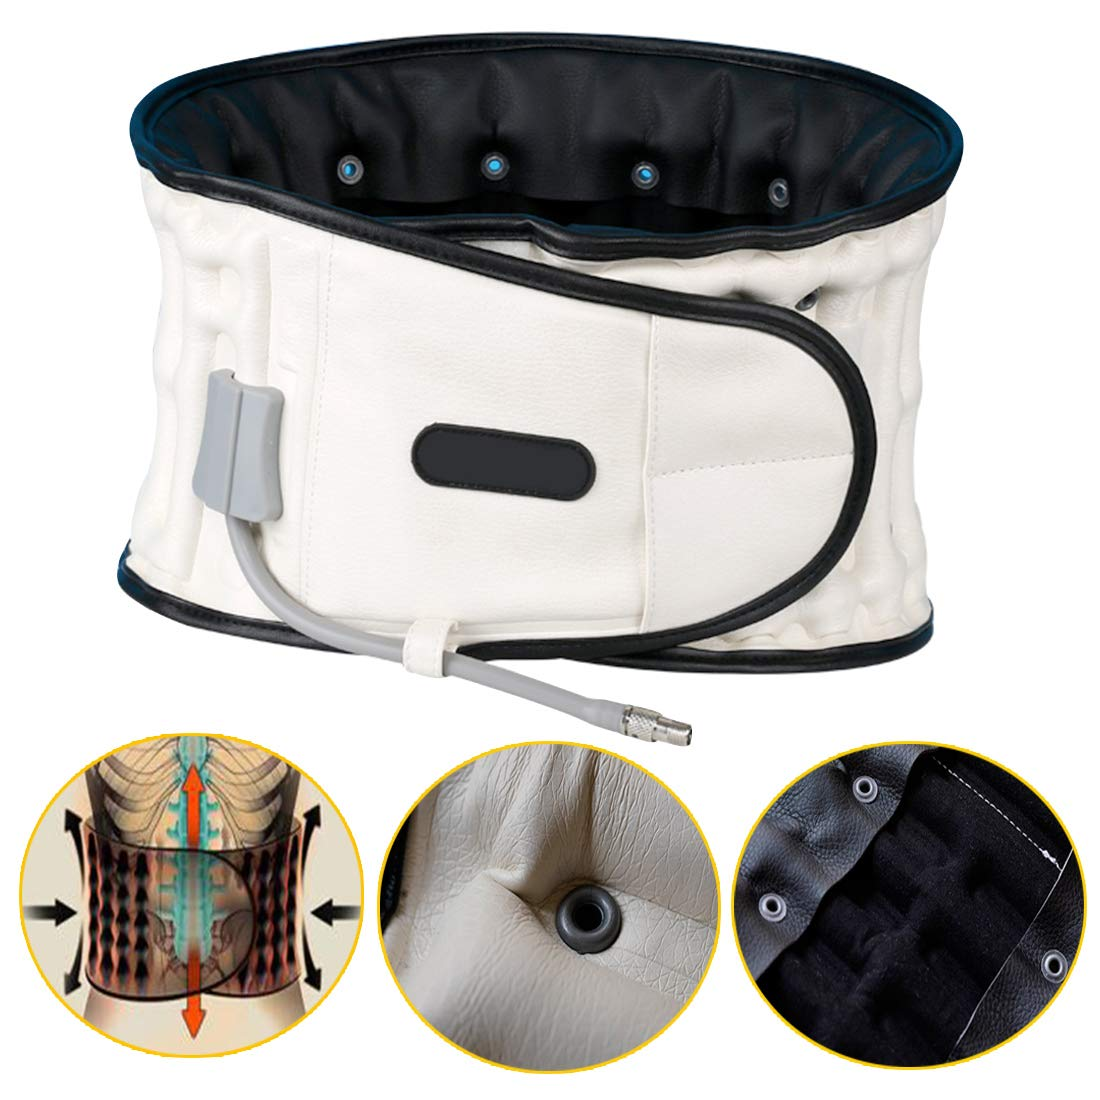 Inflated Lumbar Support Relieves Pressure On The Waist and Relieves Lower Back Pain,Decompression Back Belt With One Size for 29 inches to 49 inches. (White)